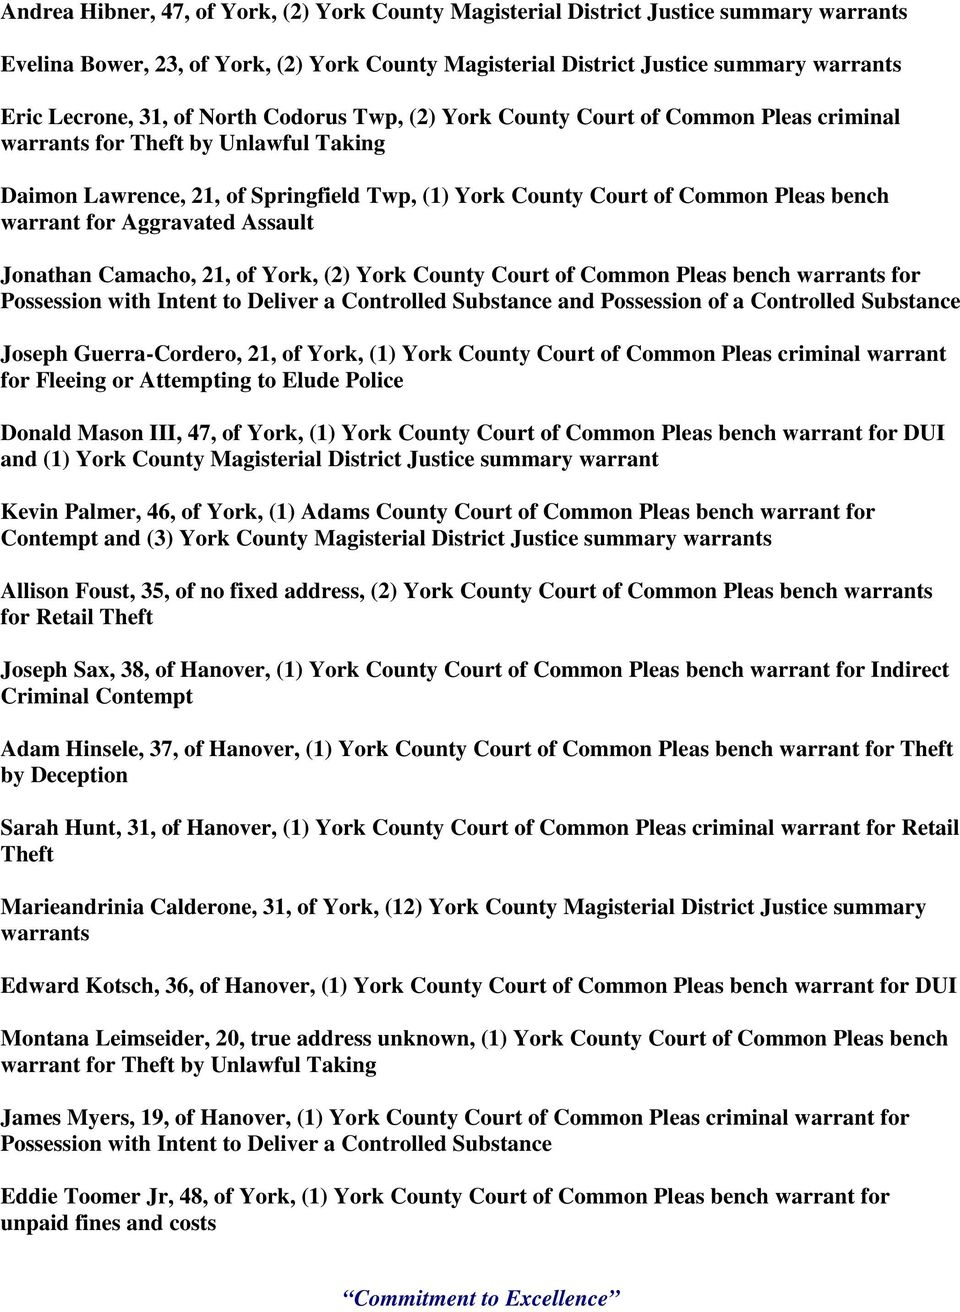 Sheriff's Office of York County - PDF